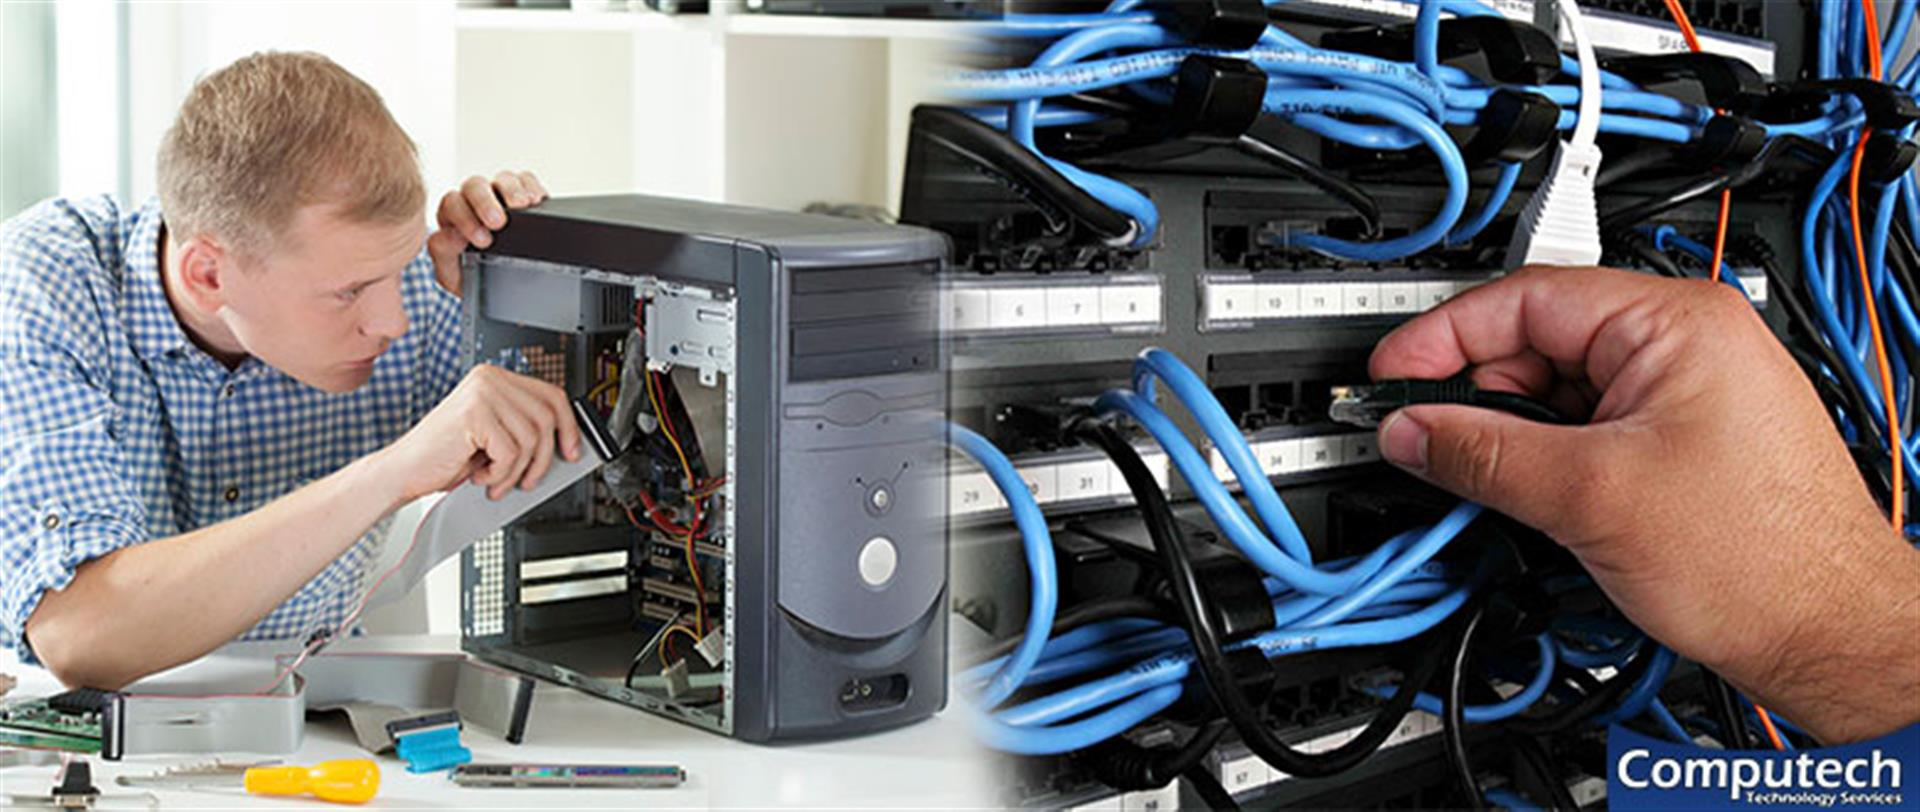 Forest Hills Tennessee On Site Computer PC and Printer Repairs, Networking, Voice & Data Cabling Services